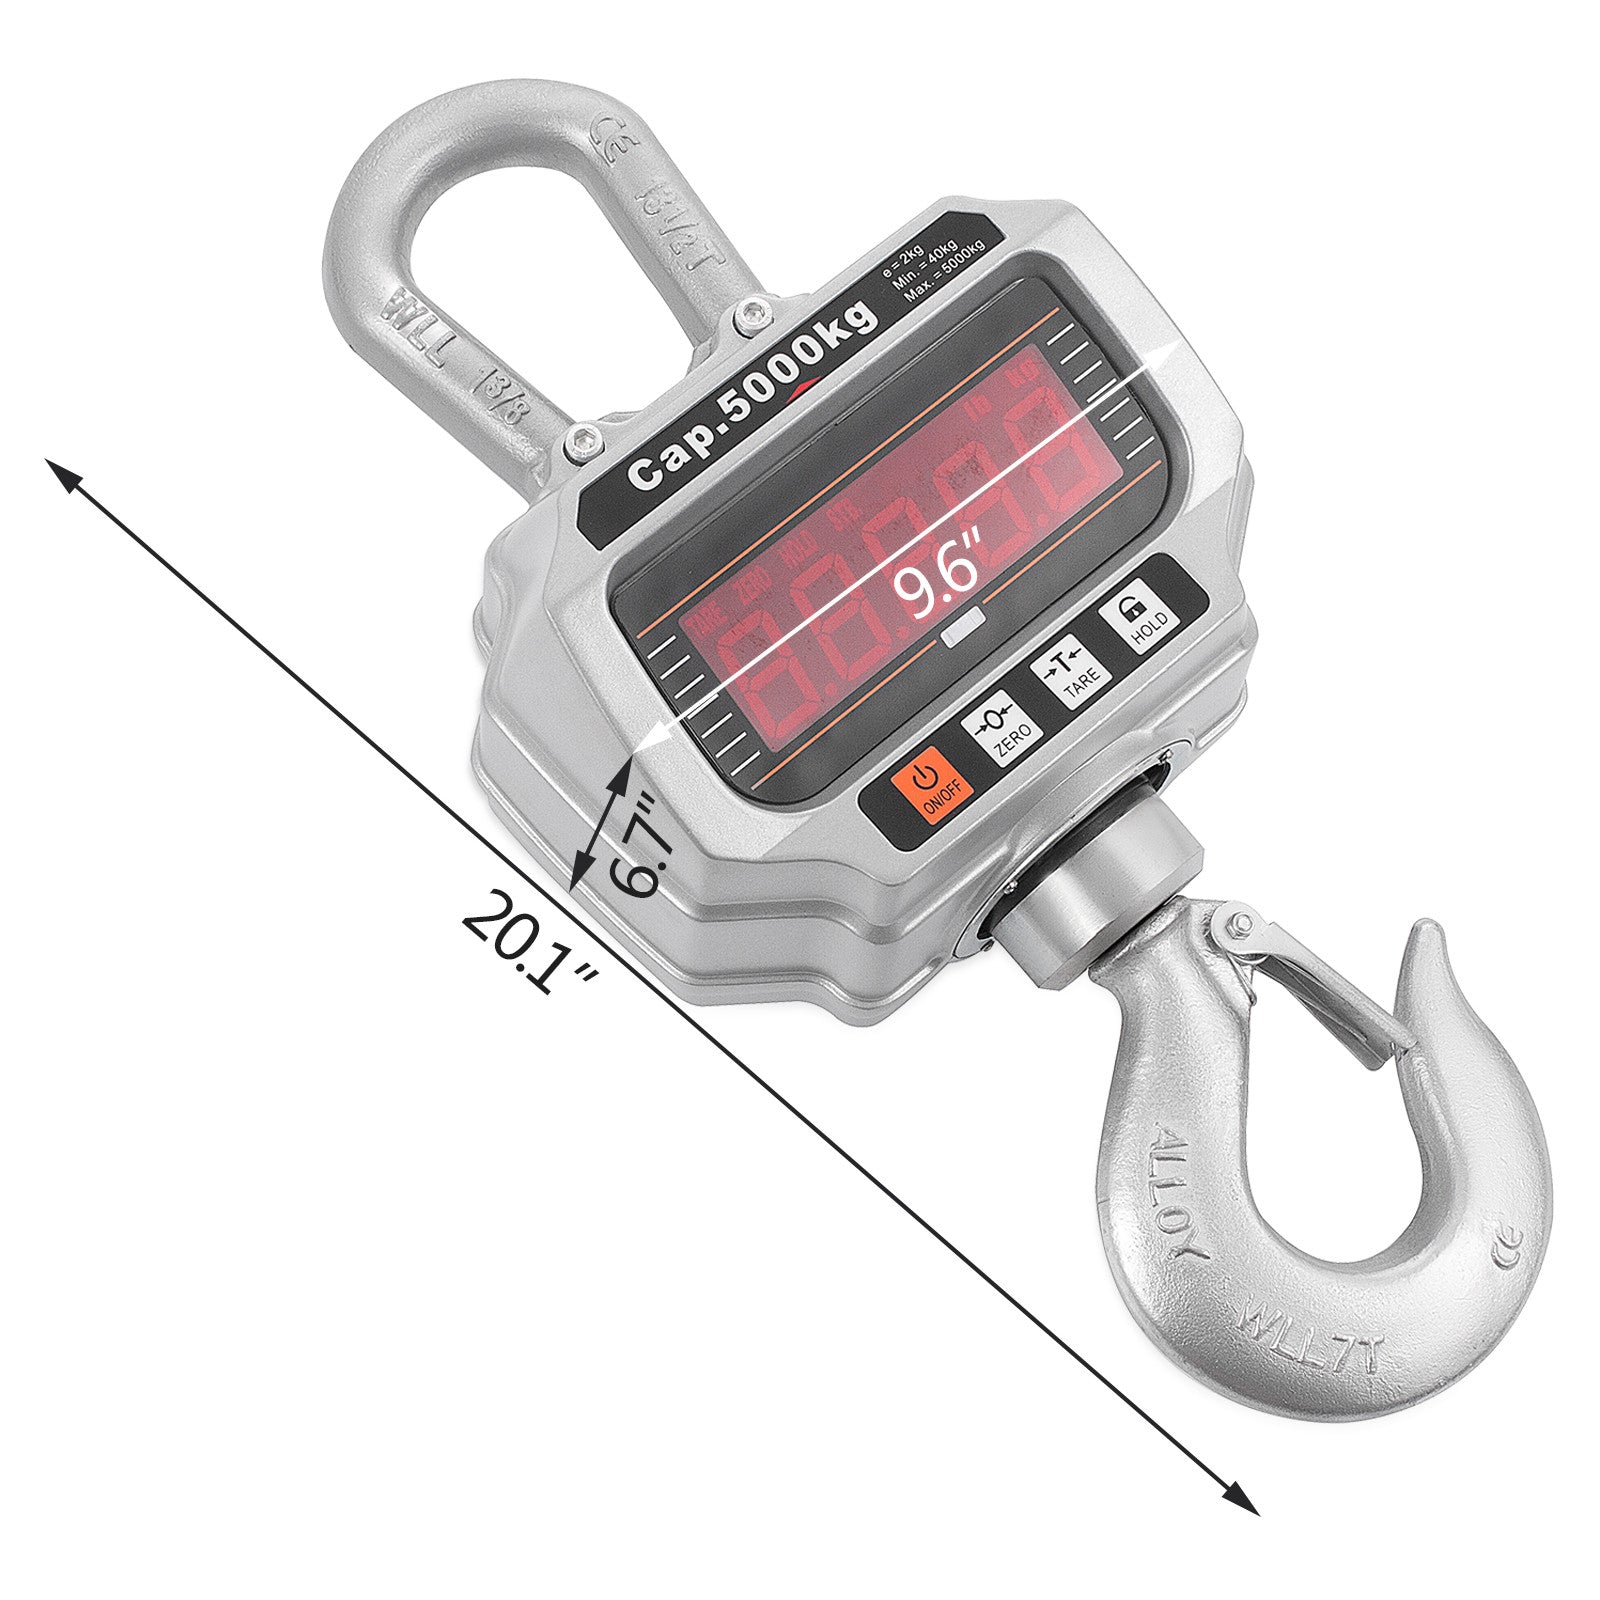 Digital Crane Hanging Scale Zero/tare 2kg Resolution High Precision Updated